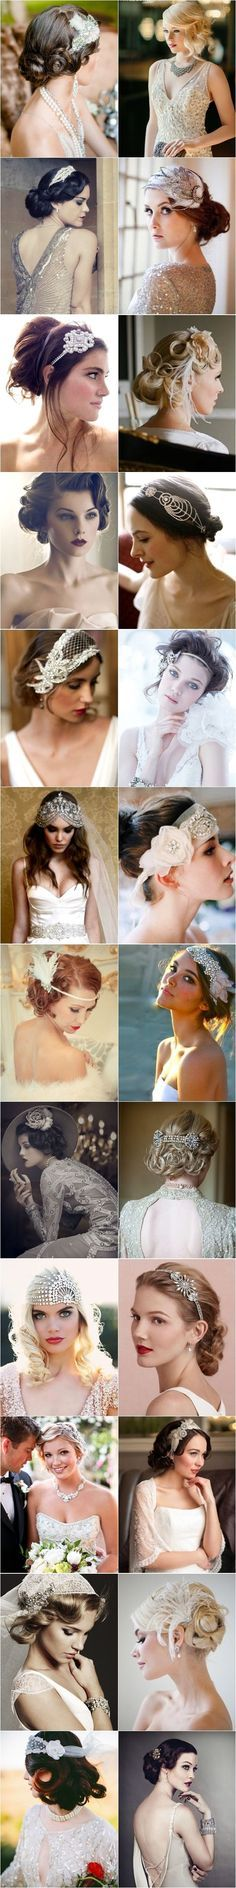 """""""Wedding Philippines - 1920s Gatsby Glam Inspired Hairstyles"""" Tons of ideas for our hair for your future Gatsby-themed wedding! Lol @kaymac2012 (scheduled via http://www.tailwindapp.com?utm_source=pinterest&utm_medium=twpin&utm_content=post6397980&utm_campaign=scheduler_attribution)"""